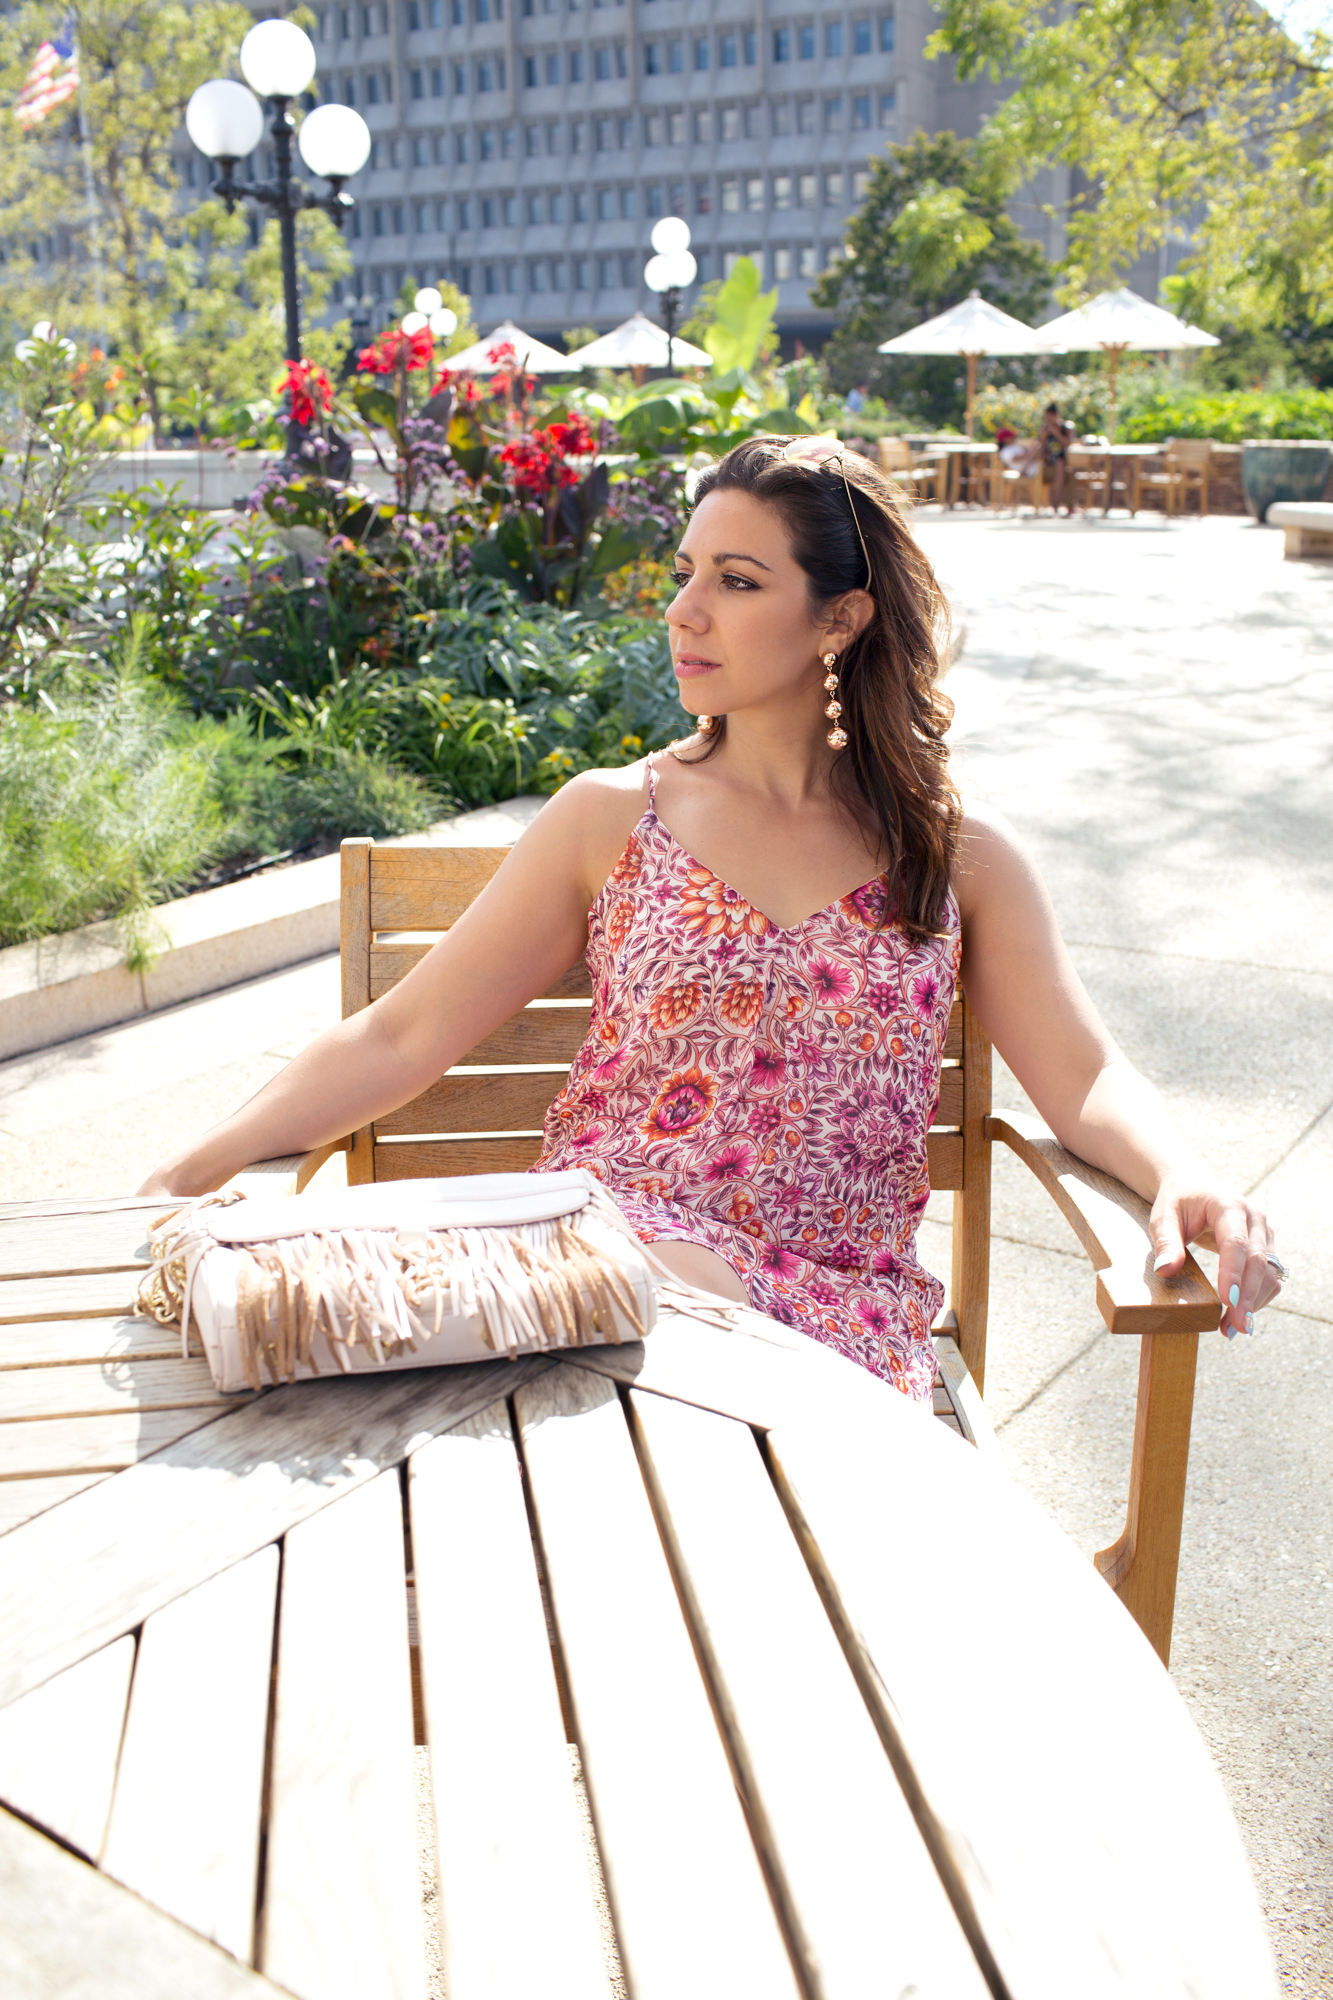 Lifestyle blogger Roxanne of Glass of Glam's lavender brown dress from Undeniable Boutique